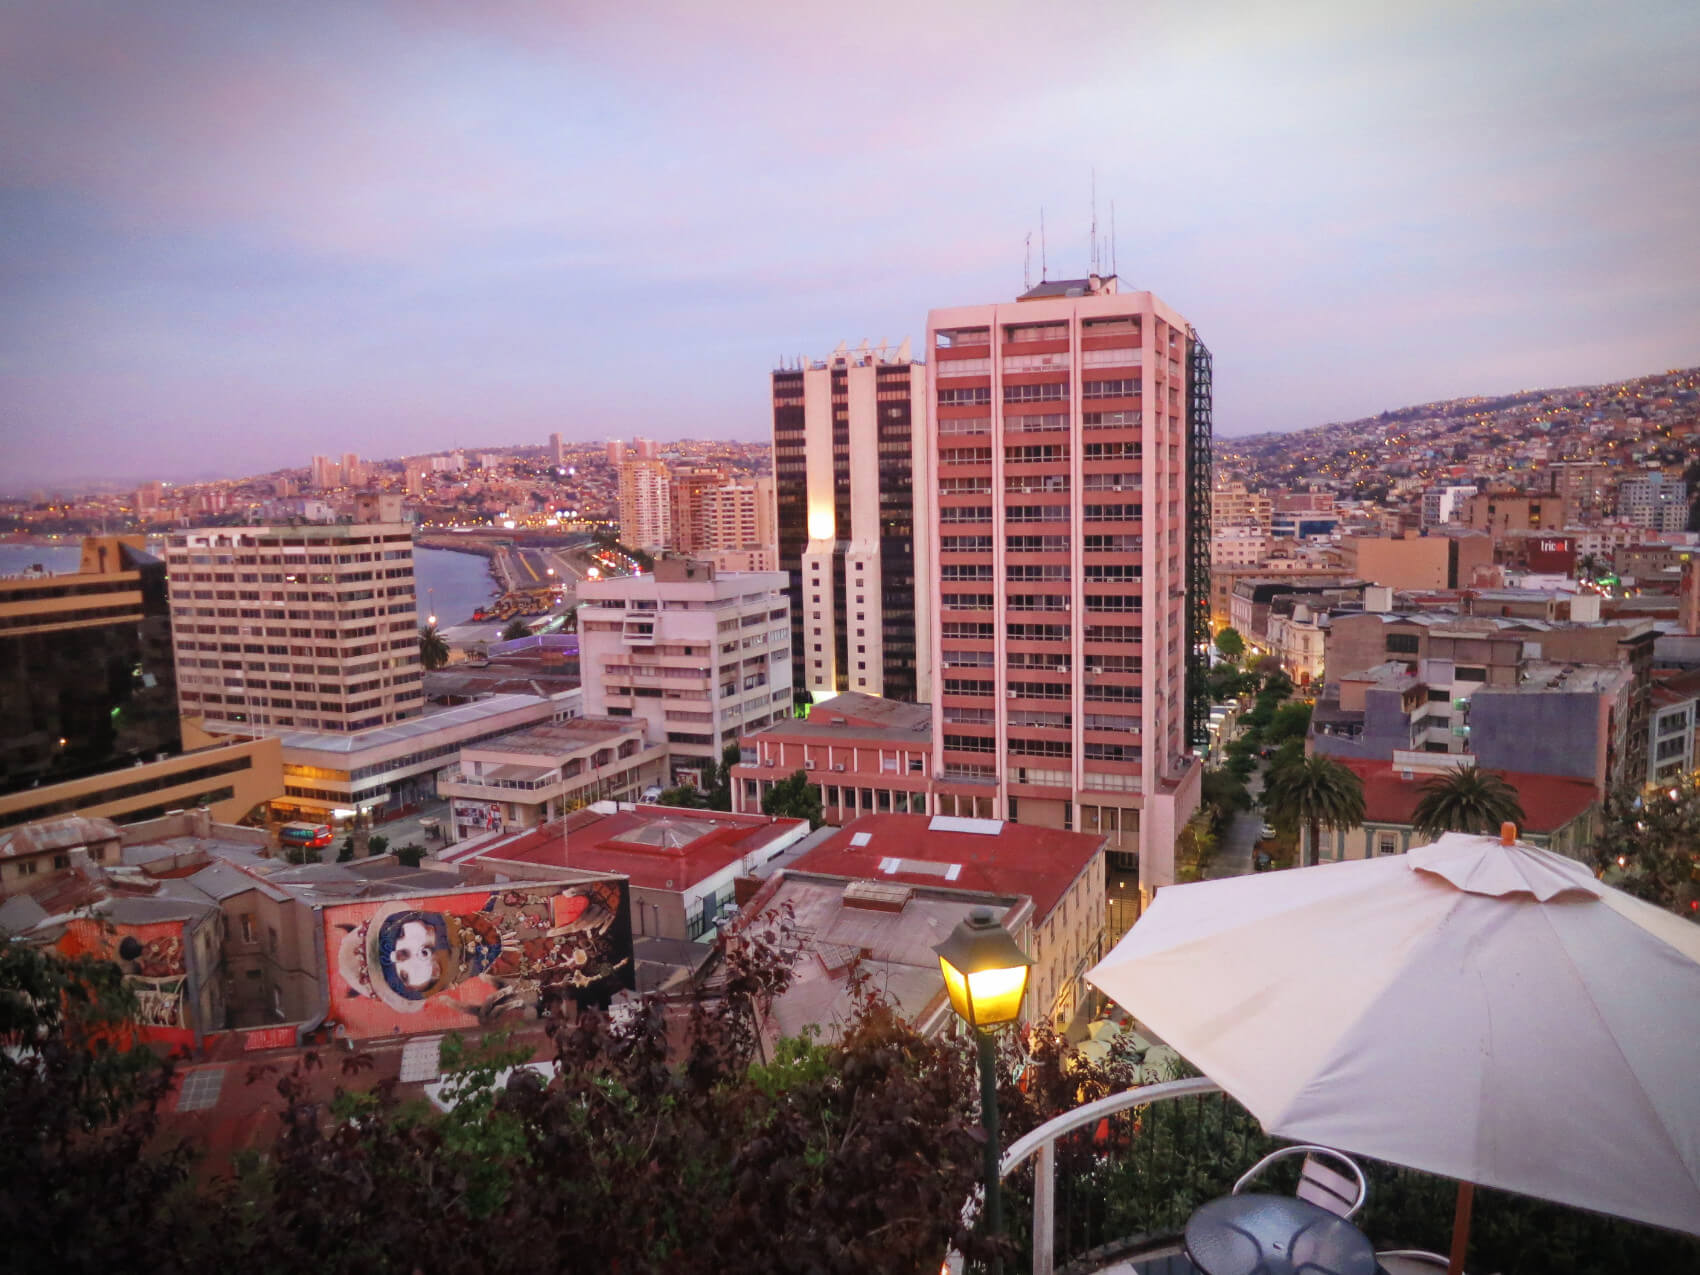 Valparaiso, Chile at sunset after a long day of wine tasting in Casablanca Valley without a tour.